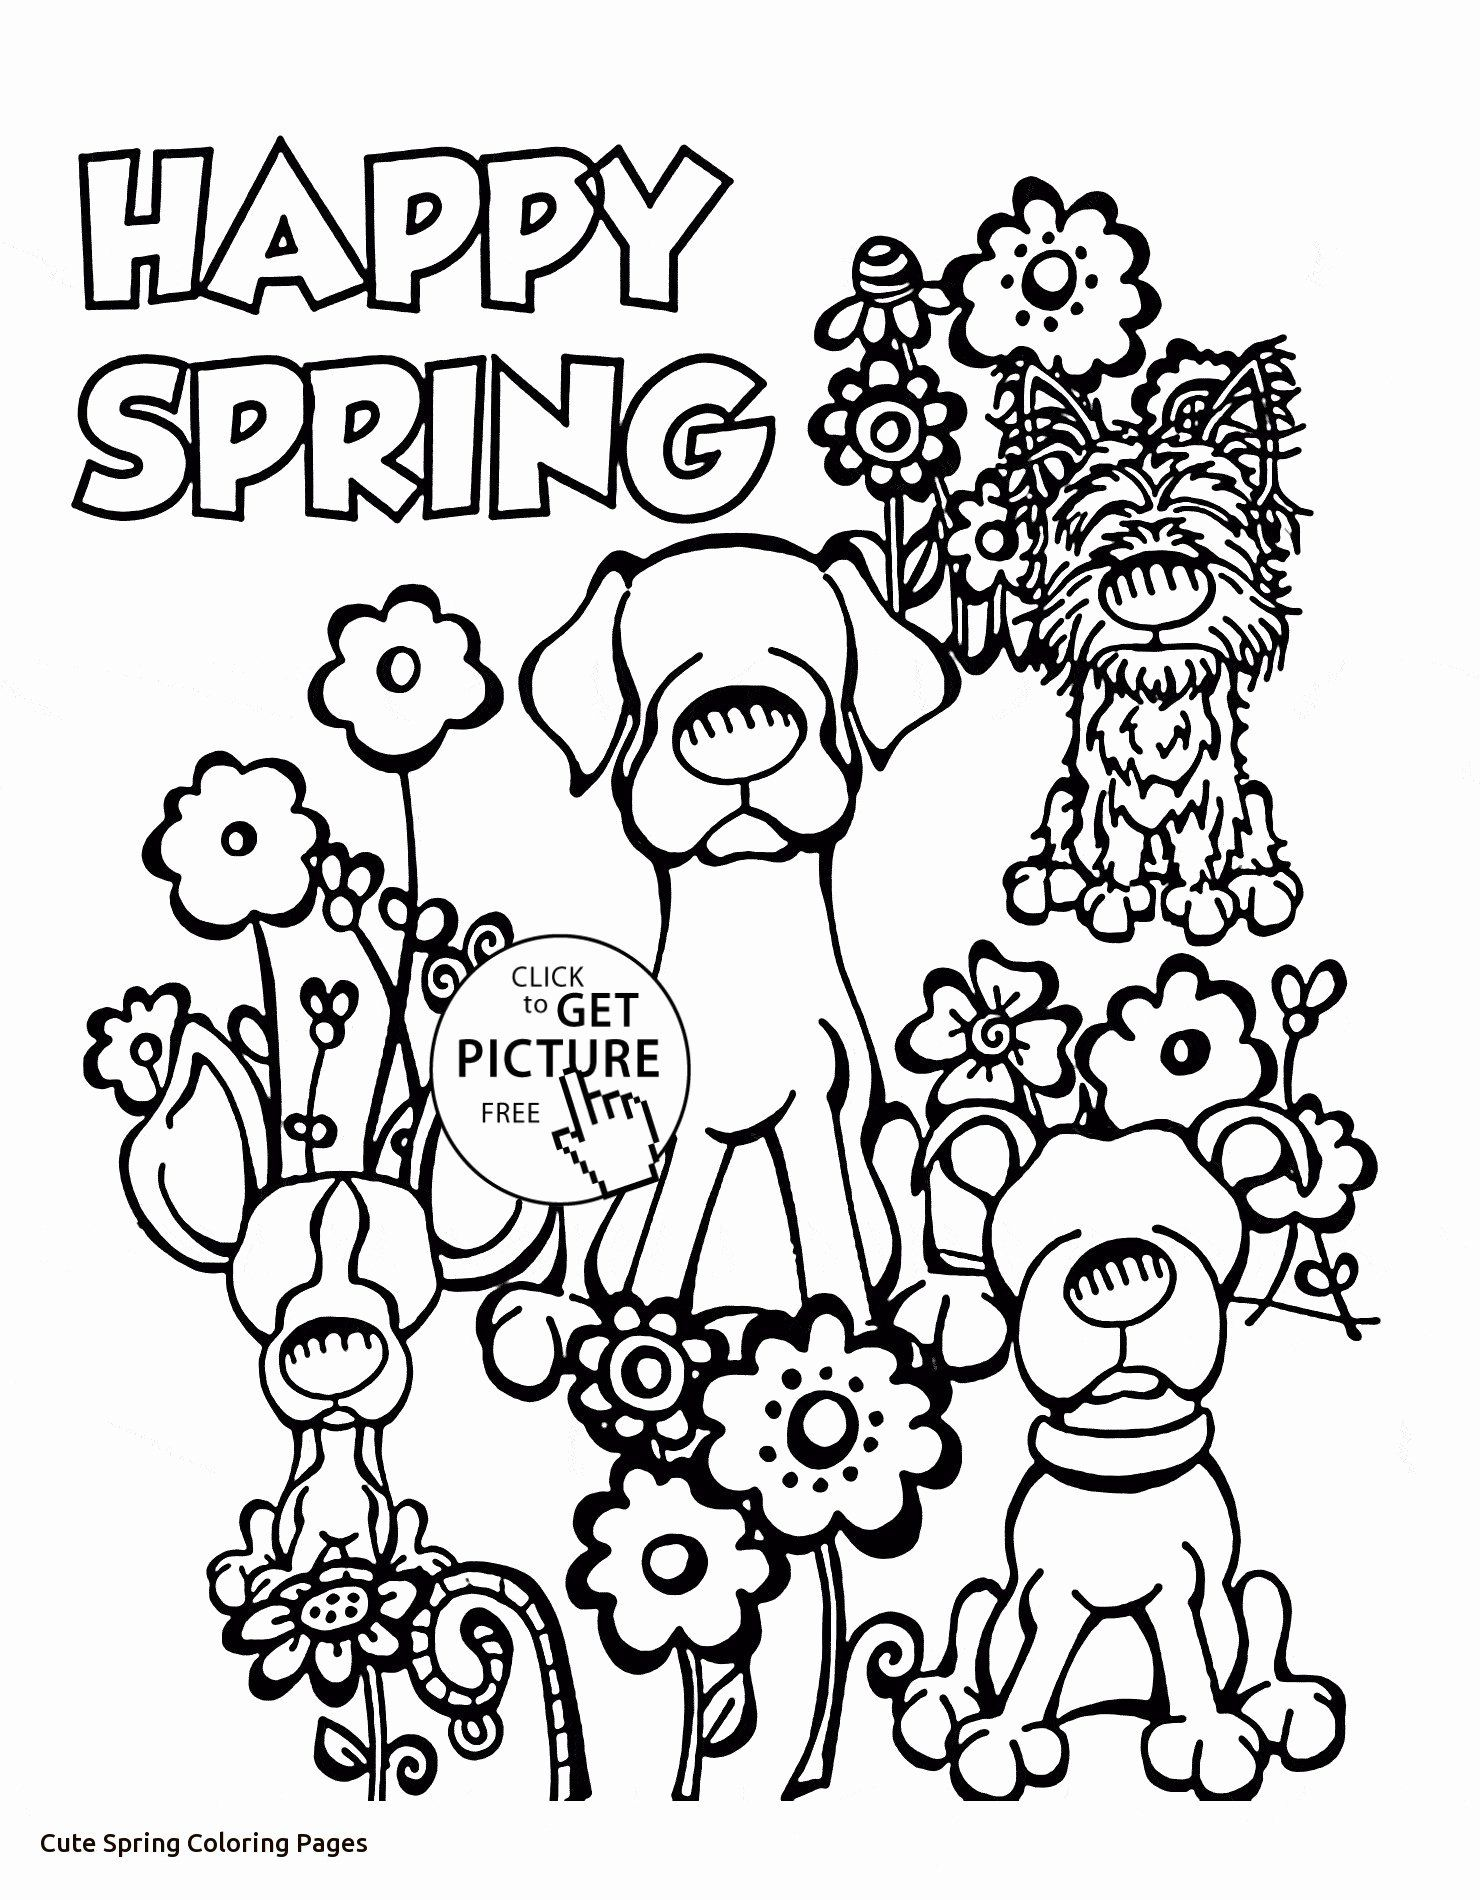 Spring Coloring Pages Free Printable Elegant Coloring Pages Cute Spring Coloring Springti In 2020 Spring Coloring Pages Spring Coloring Sheets Preschool Coloring Pages